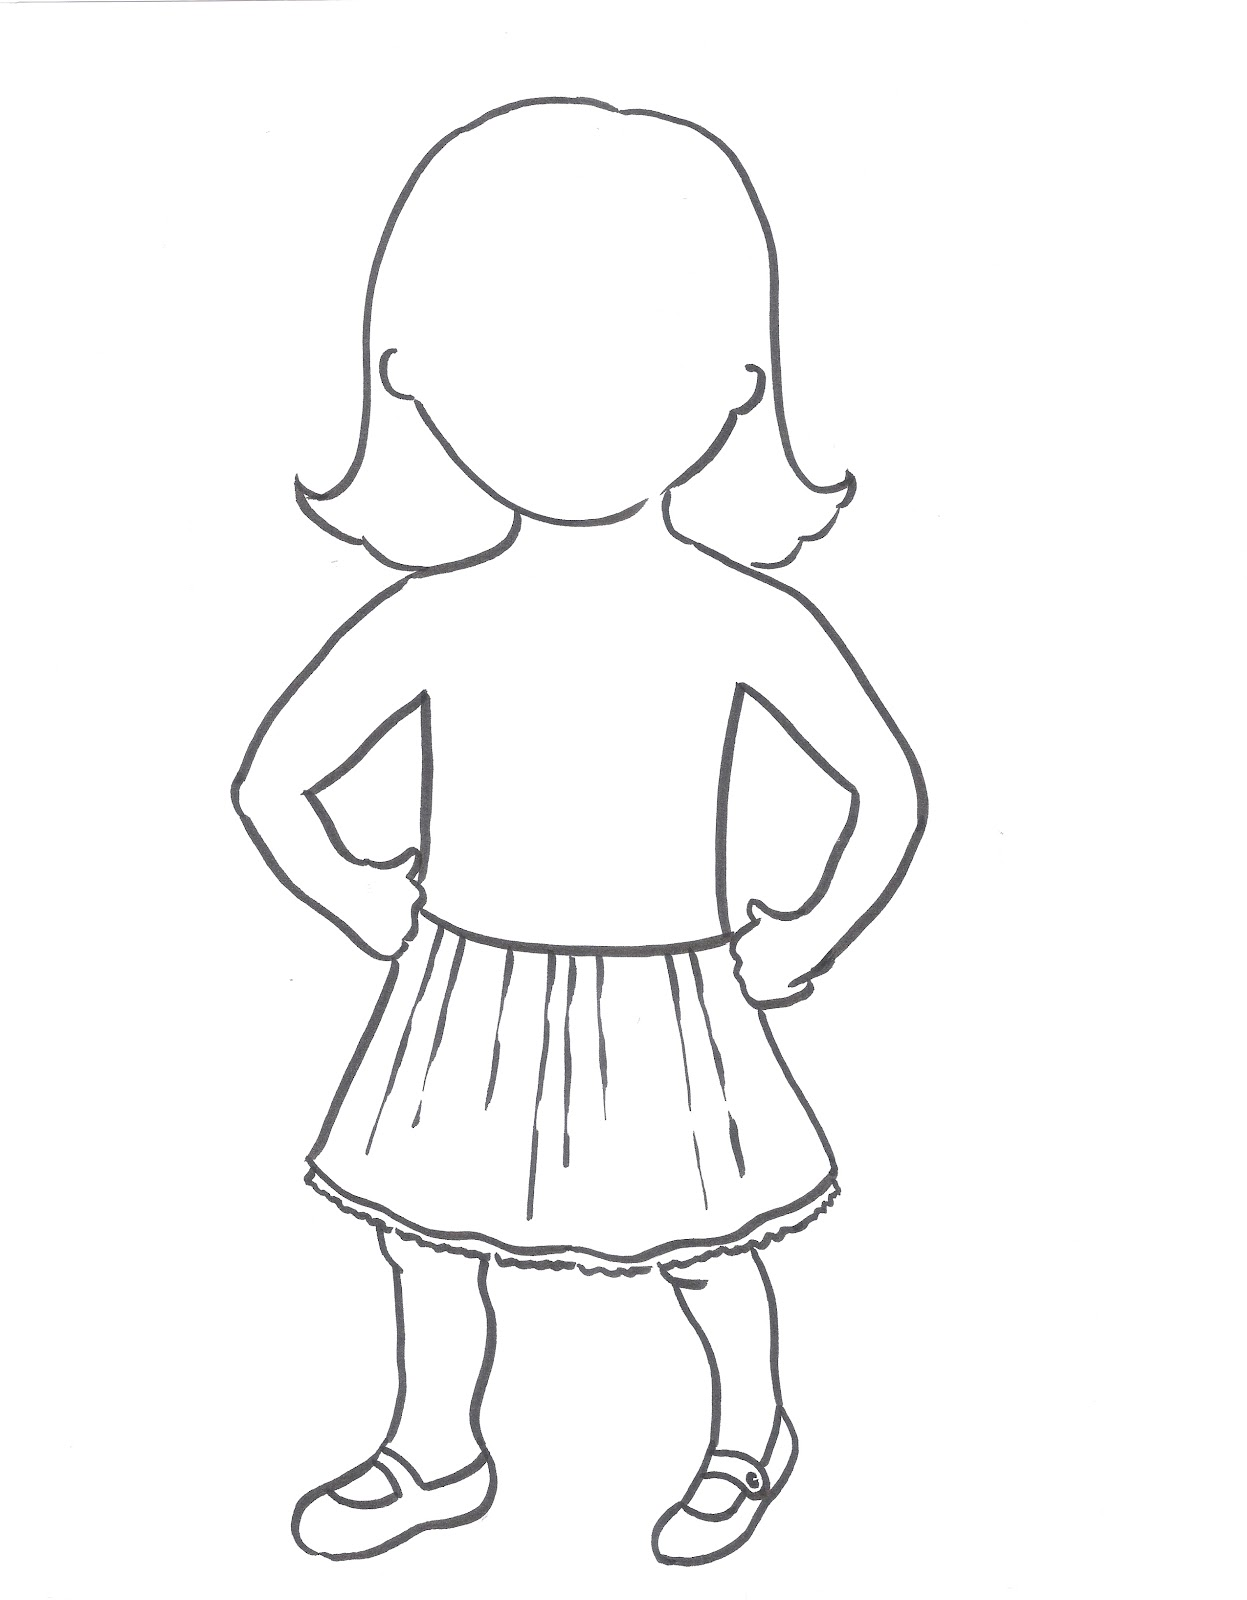 body outline drawing at getdrawings com